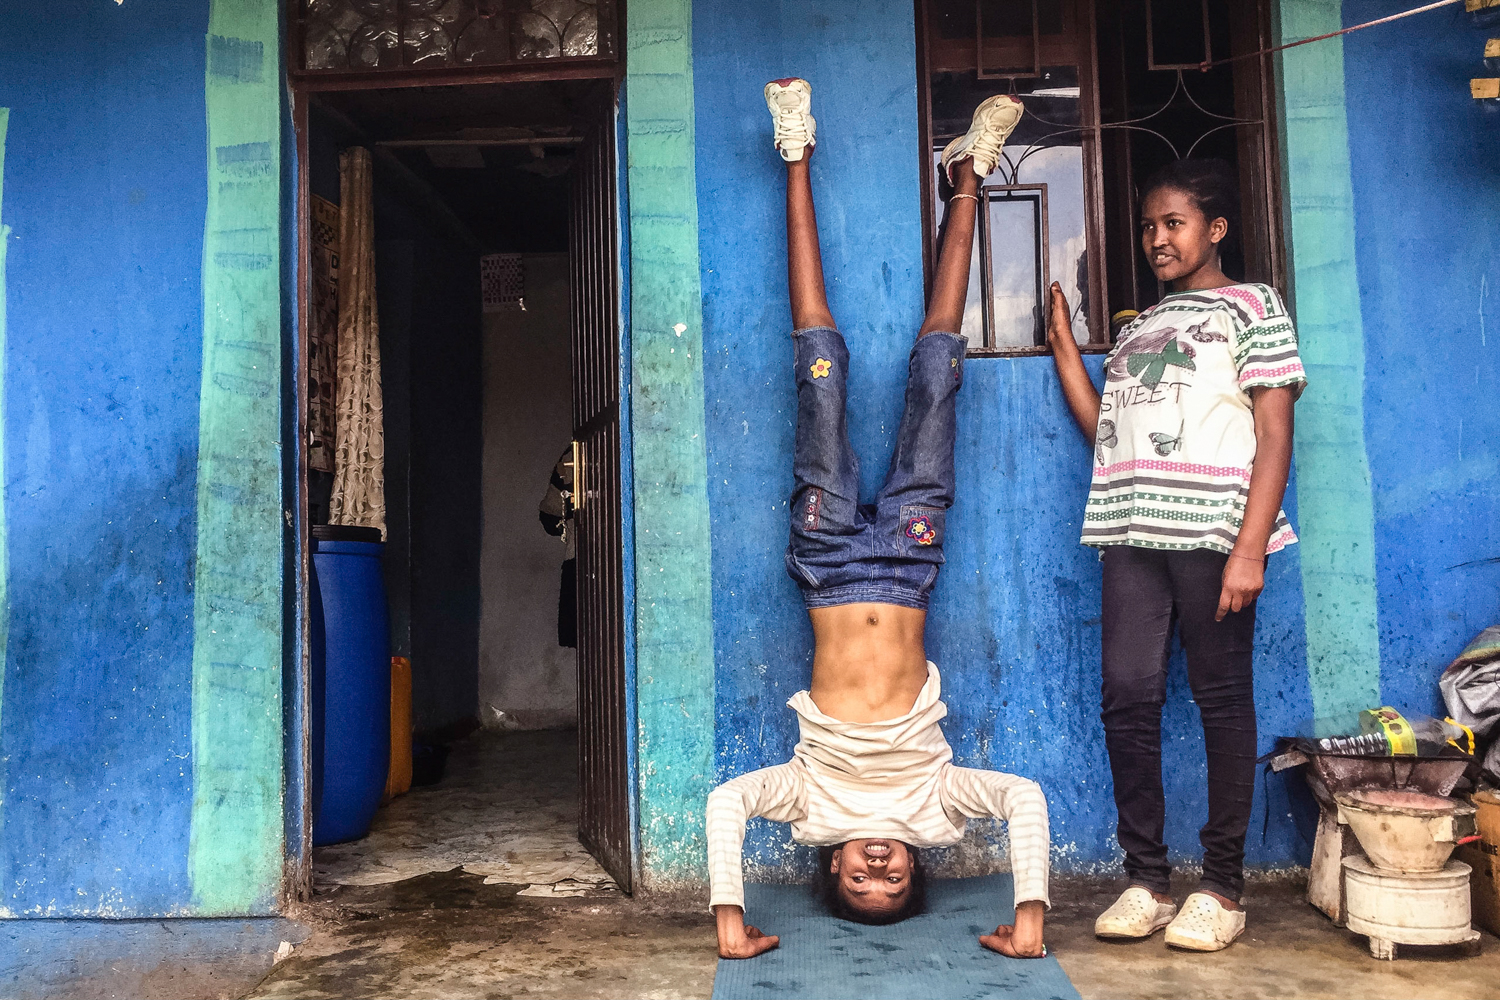 I taught yoga to the kids. Ketamesh (left) stayed after class to work on more advanced postures.